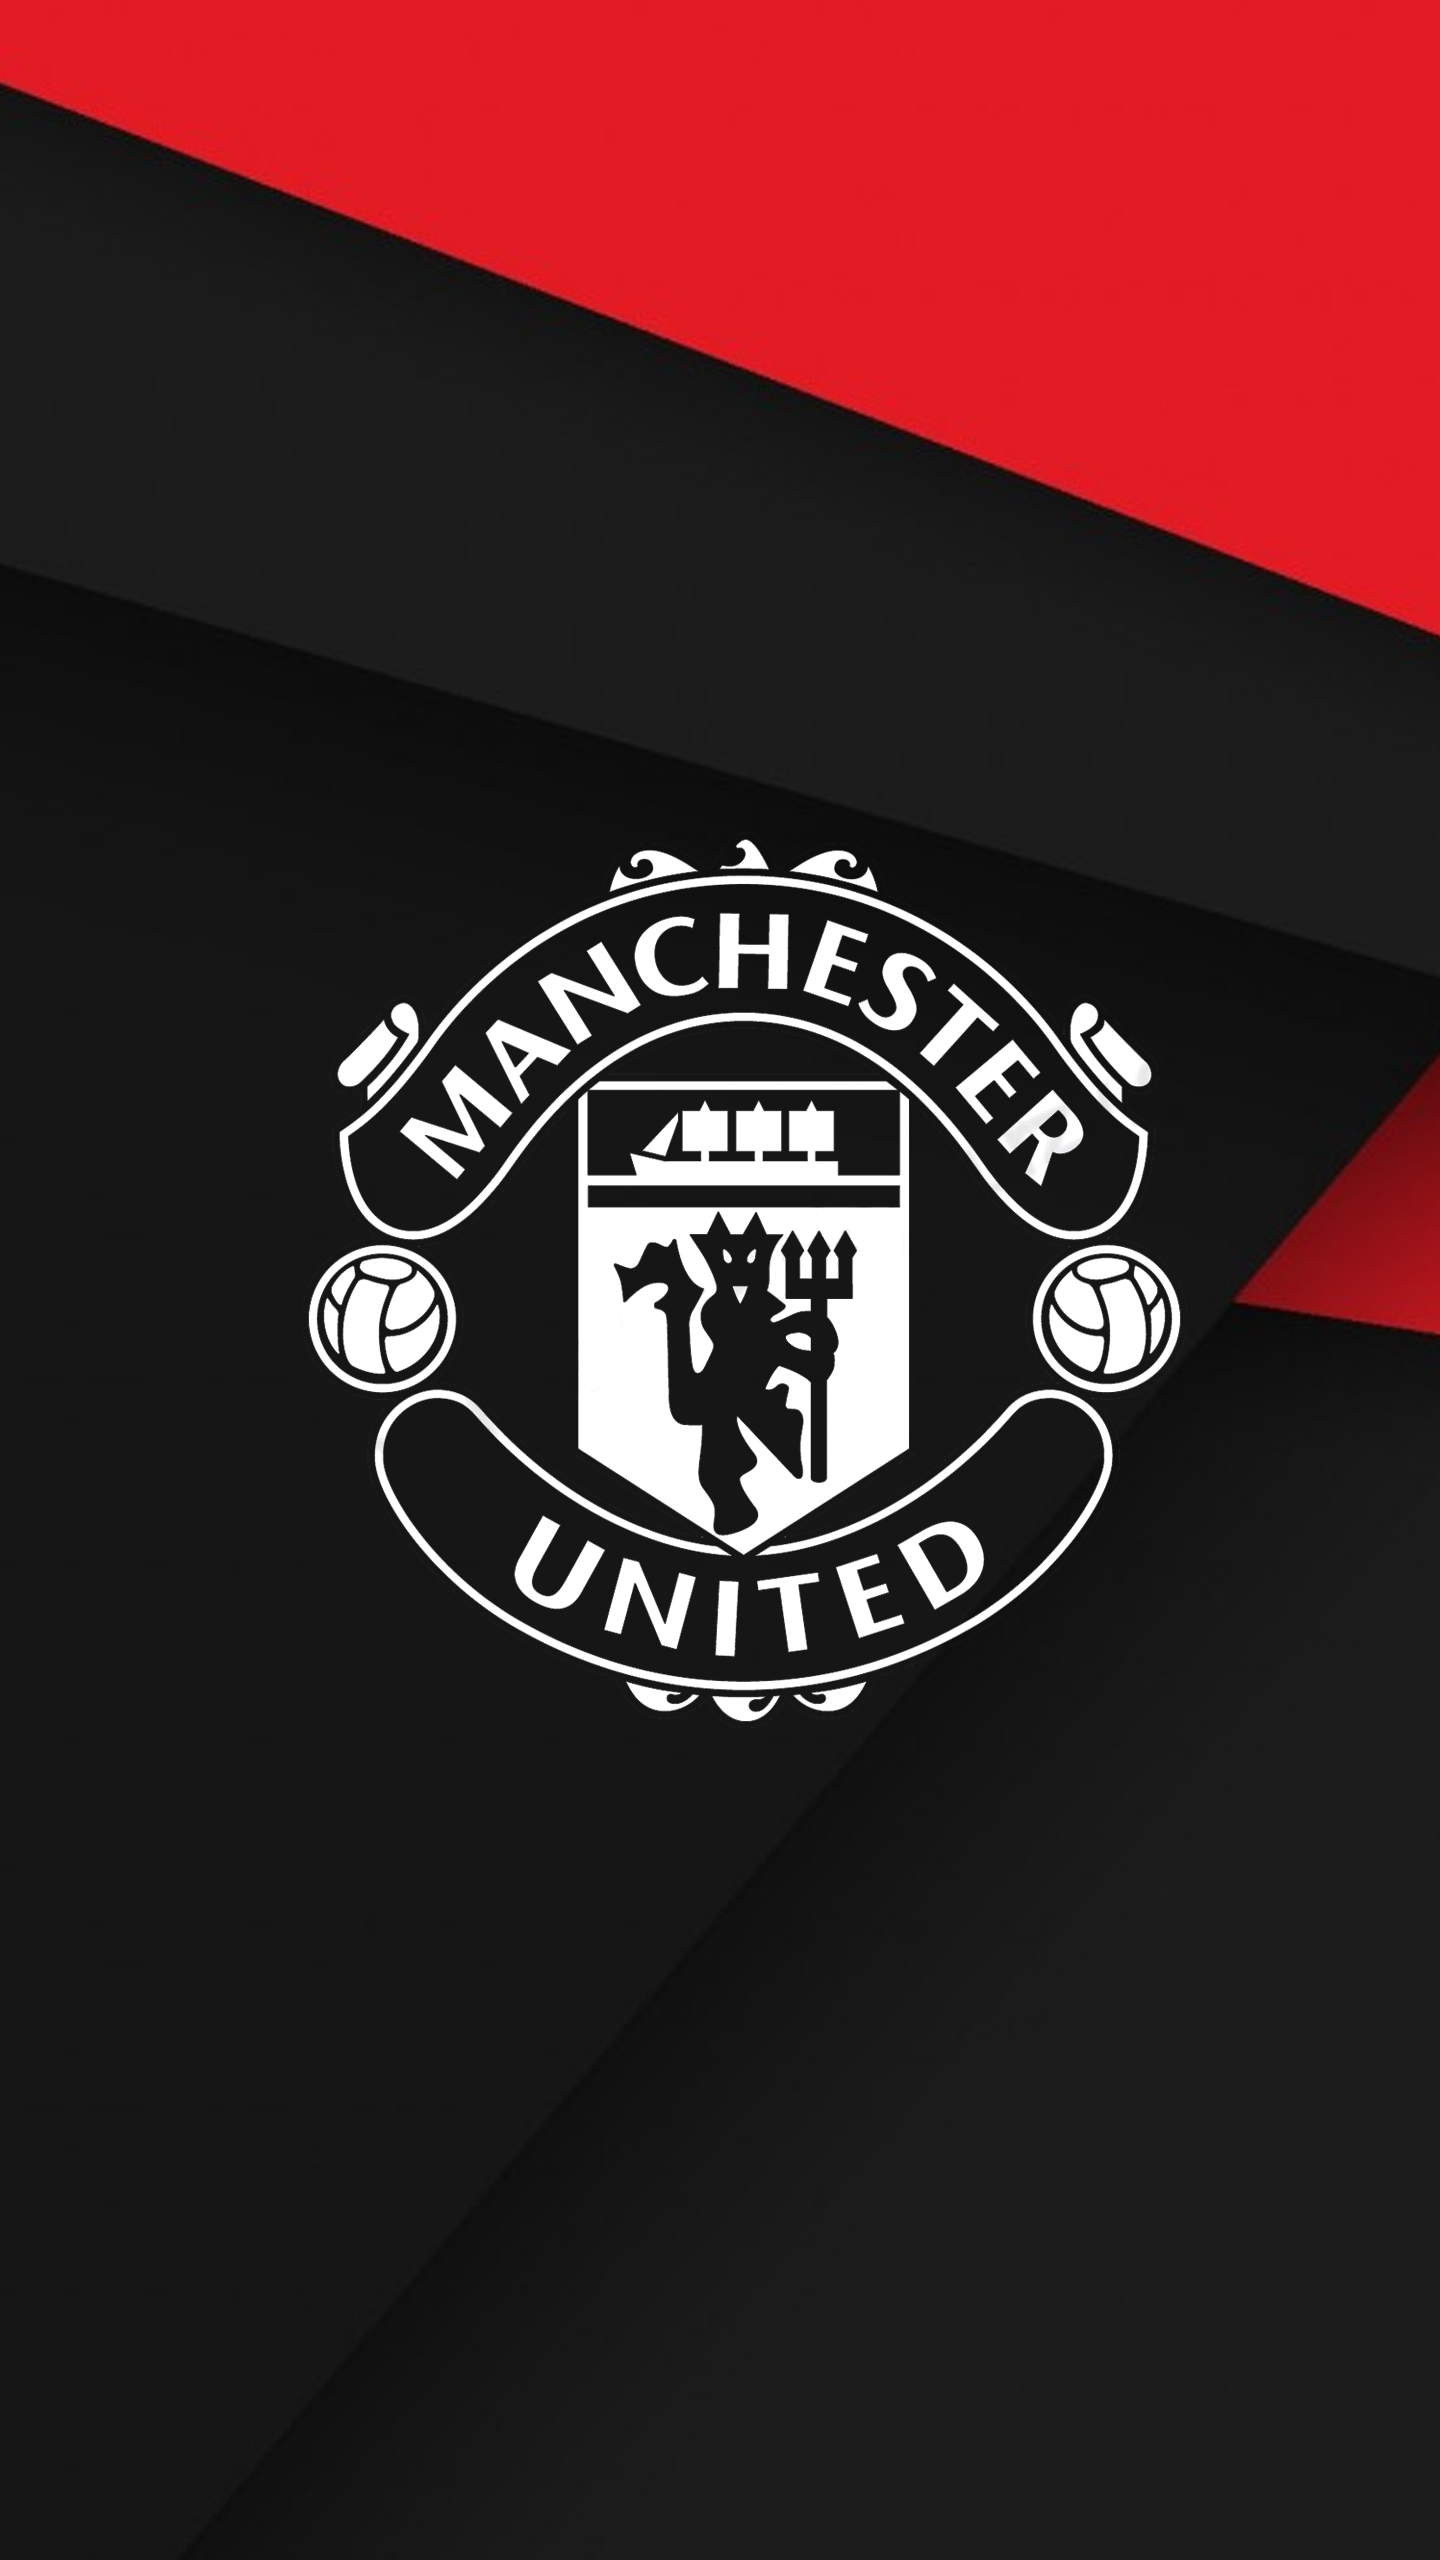 Manchester united phone wallpapers wallpaper pinterest manchester united phone wallpapers voltagebd Choice Image